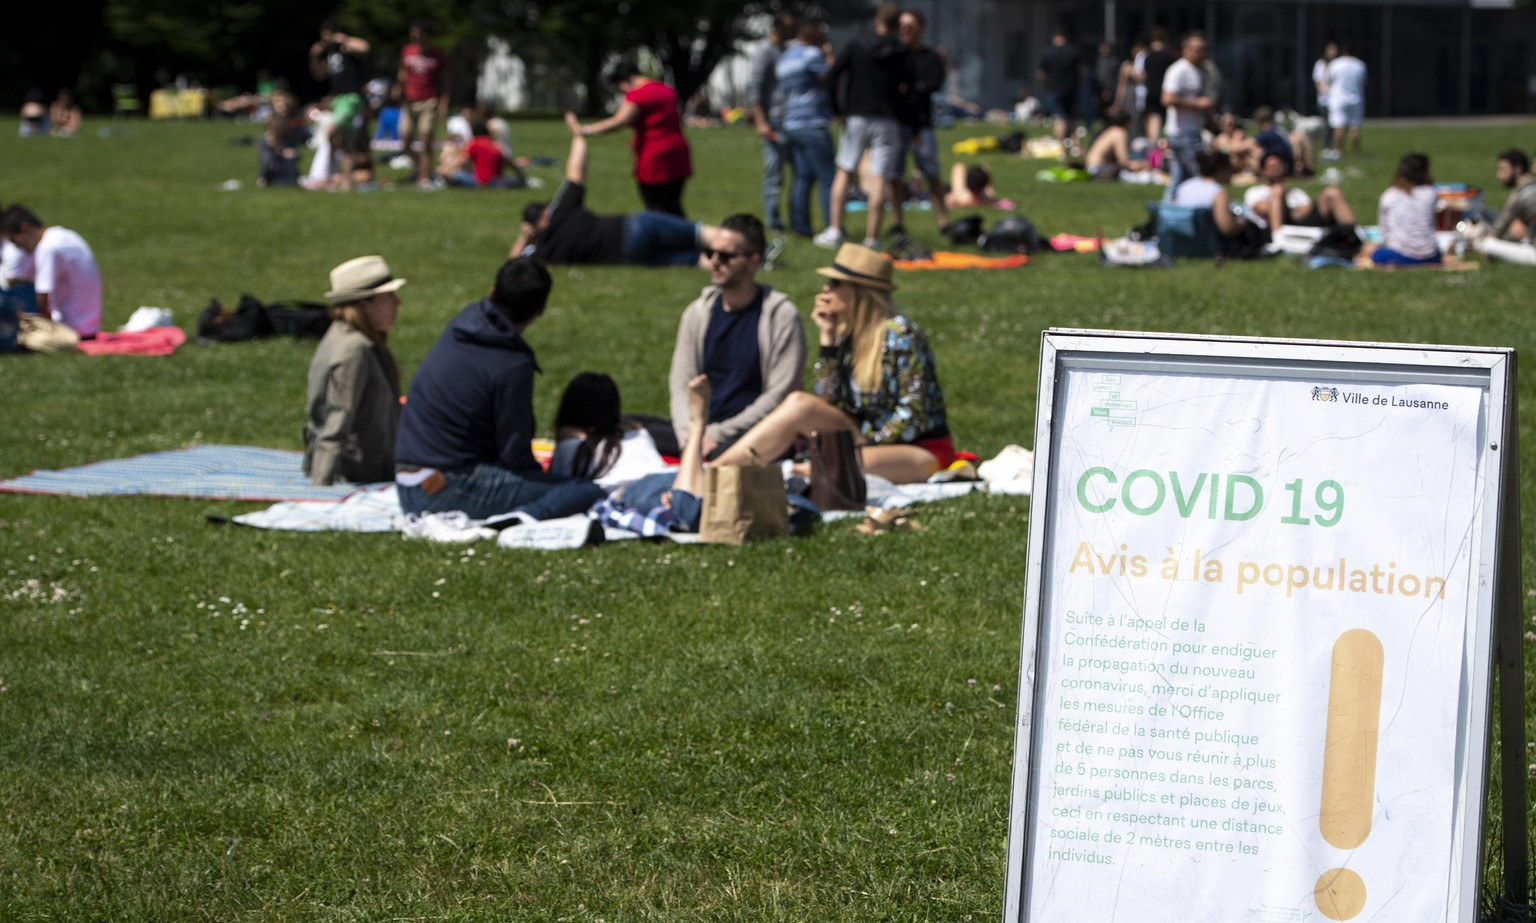 People enjoy the warm spring weather on the shore of the Lake Geneva during the state of emergency of the coronavirus disease (COVID-19) outbreak, in Lausanne, Switzerland, Sunday, May 24, 2020. In Switzerland from 11 May, loosening measures slowing down the ongoing pandemic of the COVID-19 disease, which is caused by the SARS-CoV-2 coronavirus, become effective by step. Classroom teaching at primary and lower secondary schools will again be permitted. Shops, markets, museums, libraries and restaurants will be able to reopen under strict compliance with precautionary measures. (KEYSTONE/Laurent Gillieron).